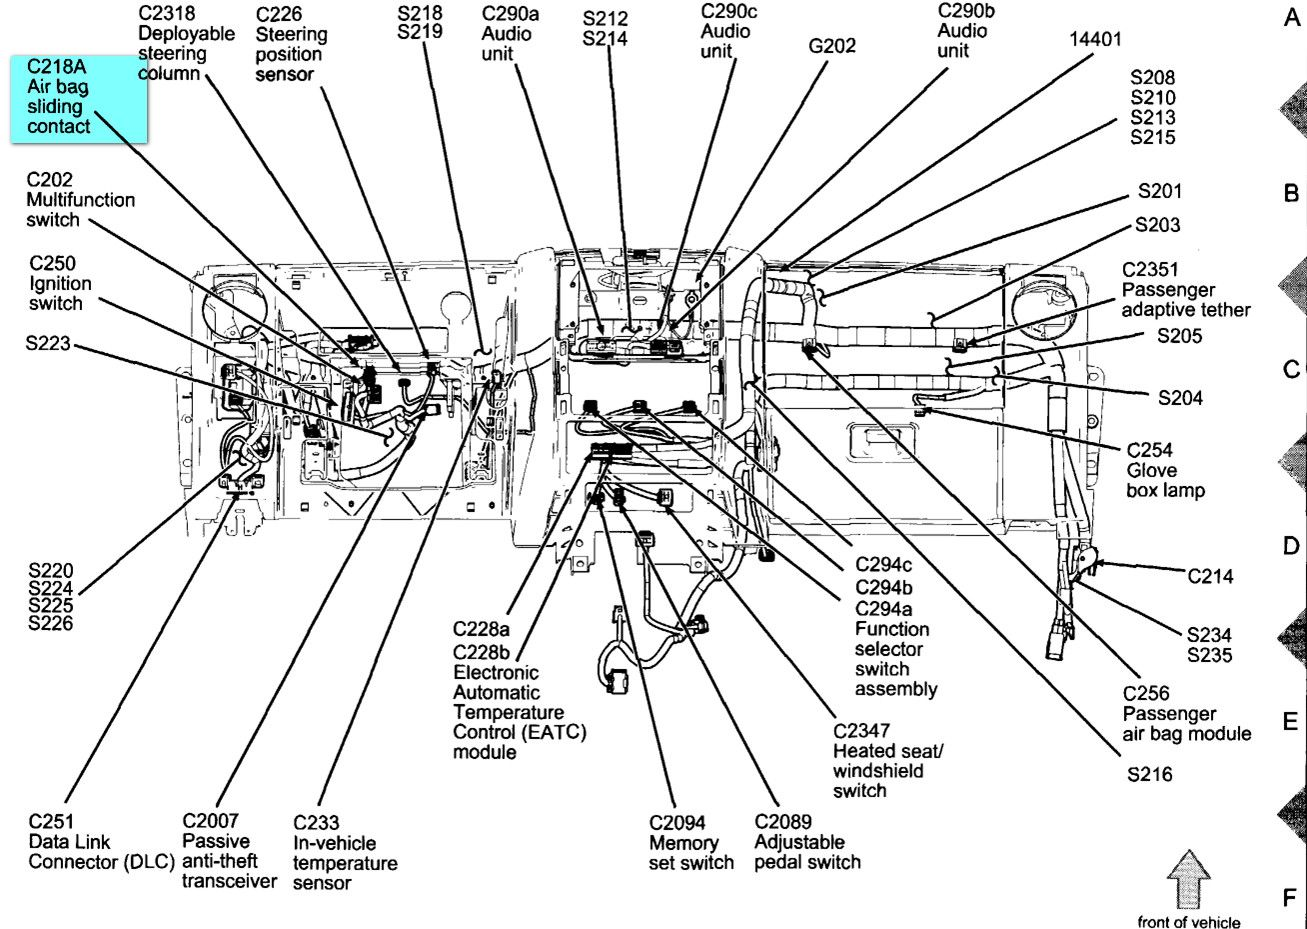 Ford F 150 Dashboard Parts Diagram. Ford. Wiring Diagram